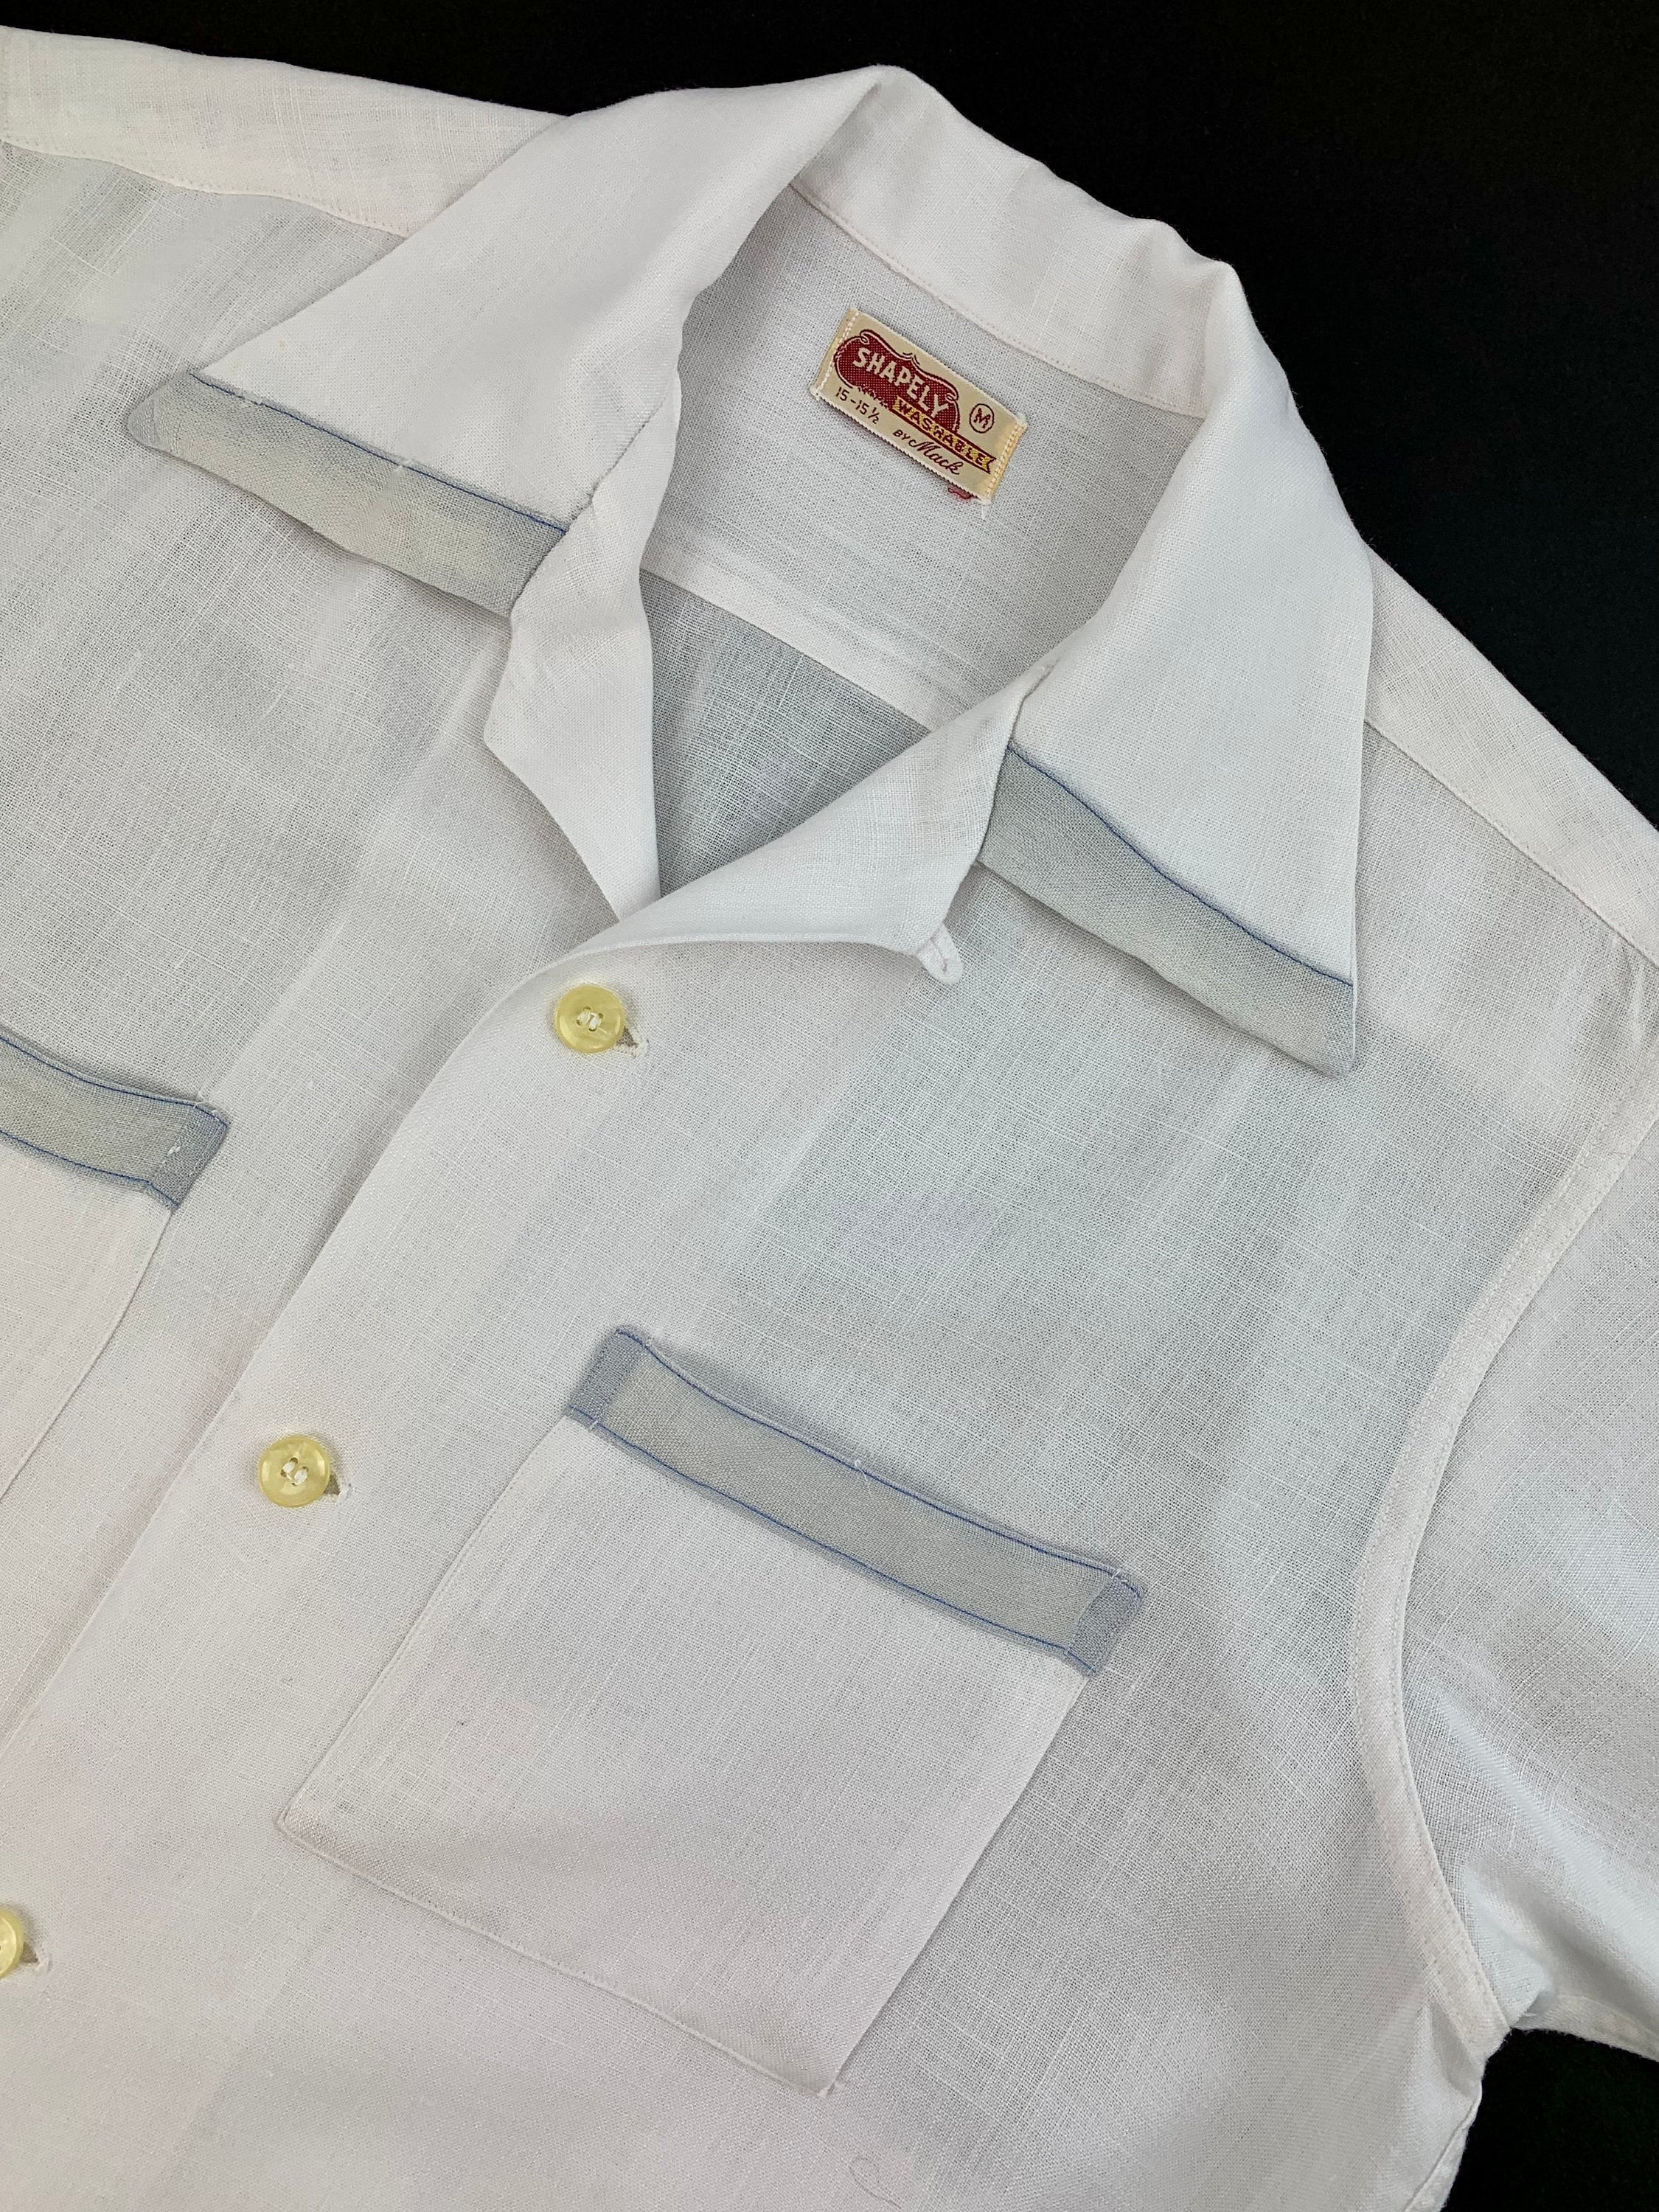 1940s Men's Shirts, Sweaters, Vests 1940s Rayon Shirt - Shapley Label Summer Weight Fabric -White With 2-Tone Gray Details Loop Collar Mens Size Medium $22.95 AT vintagedancer.com